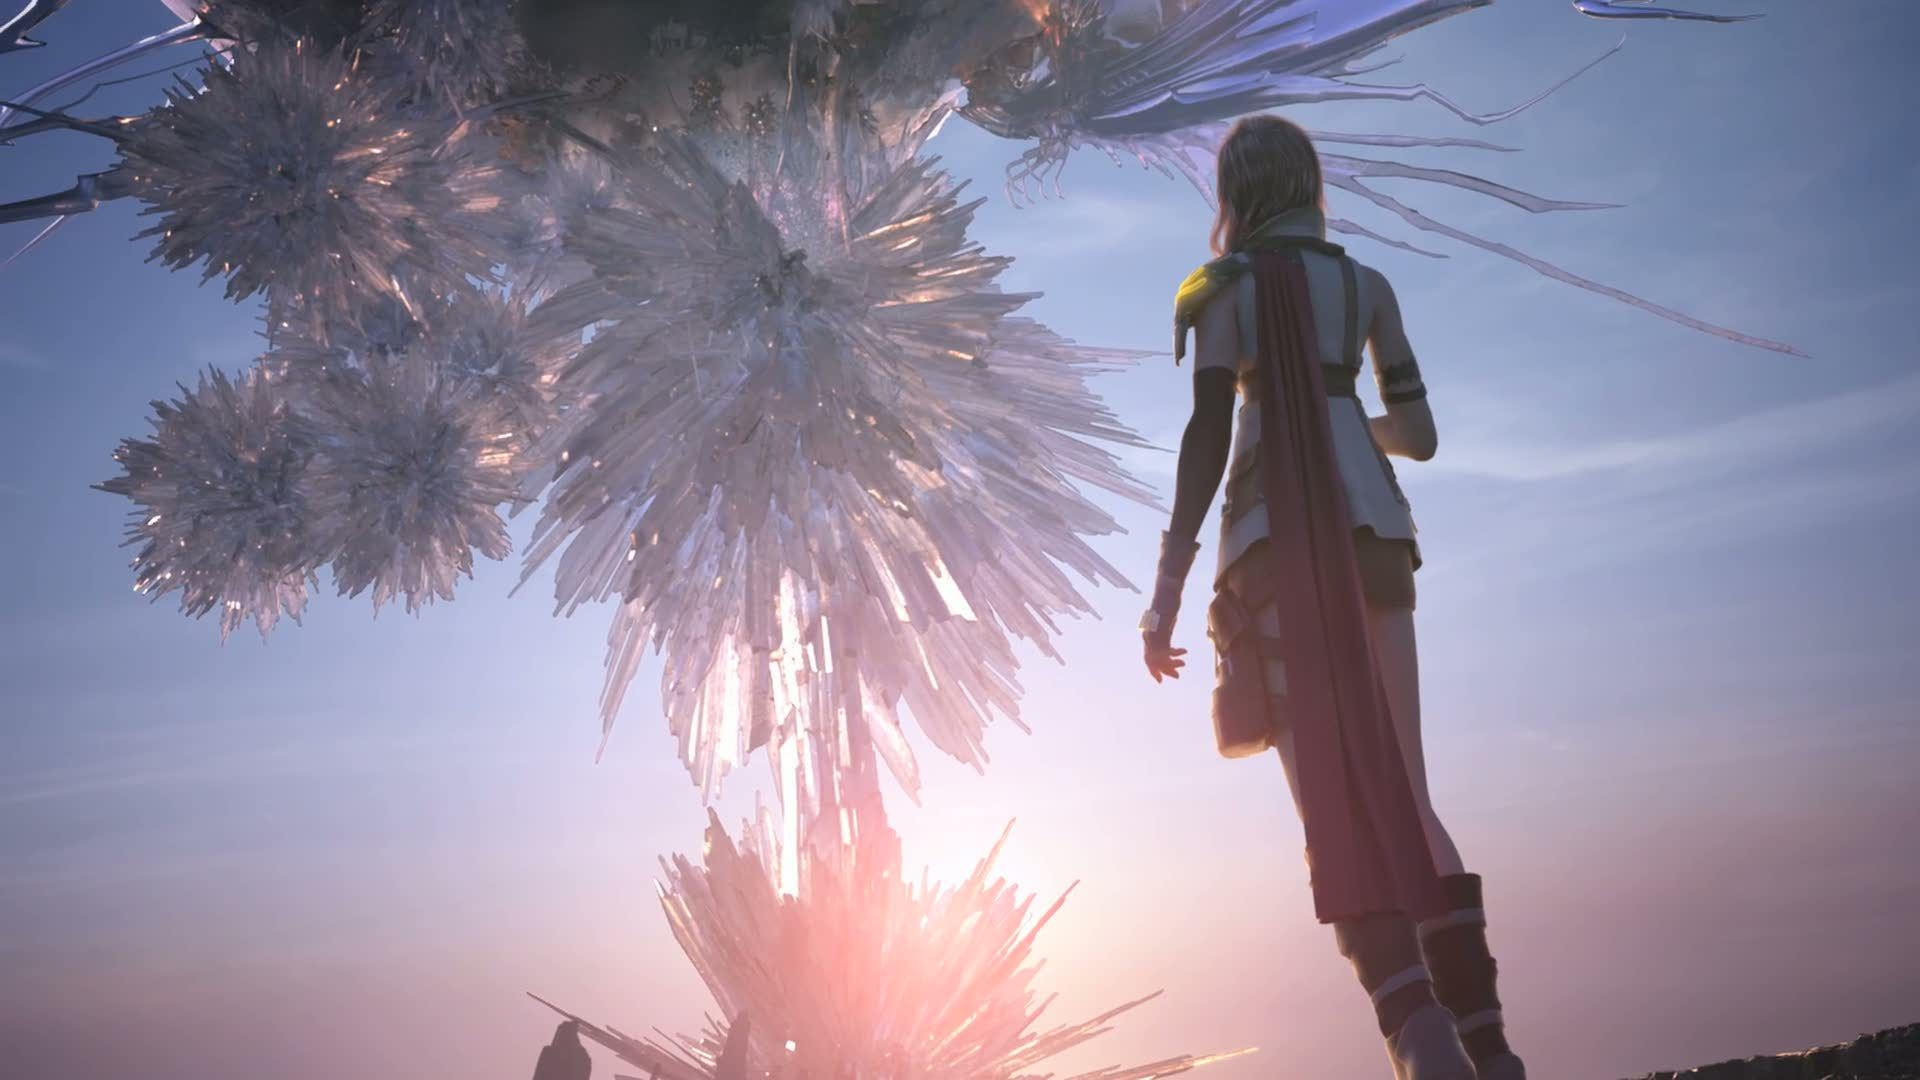 X final fantasy xiii wallpapers wallpapers pinterest final x final fantasy xiii wallpapers voltagebd Choice Image